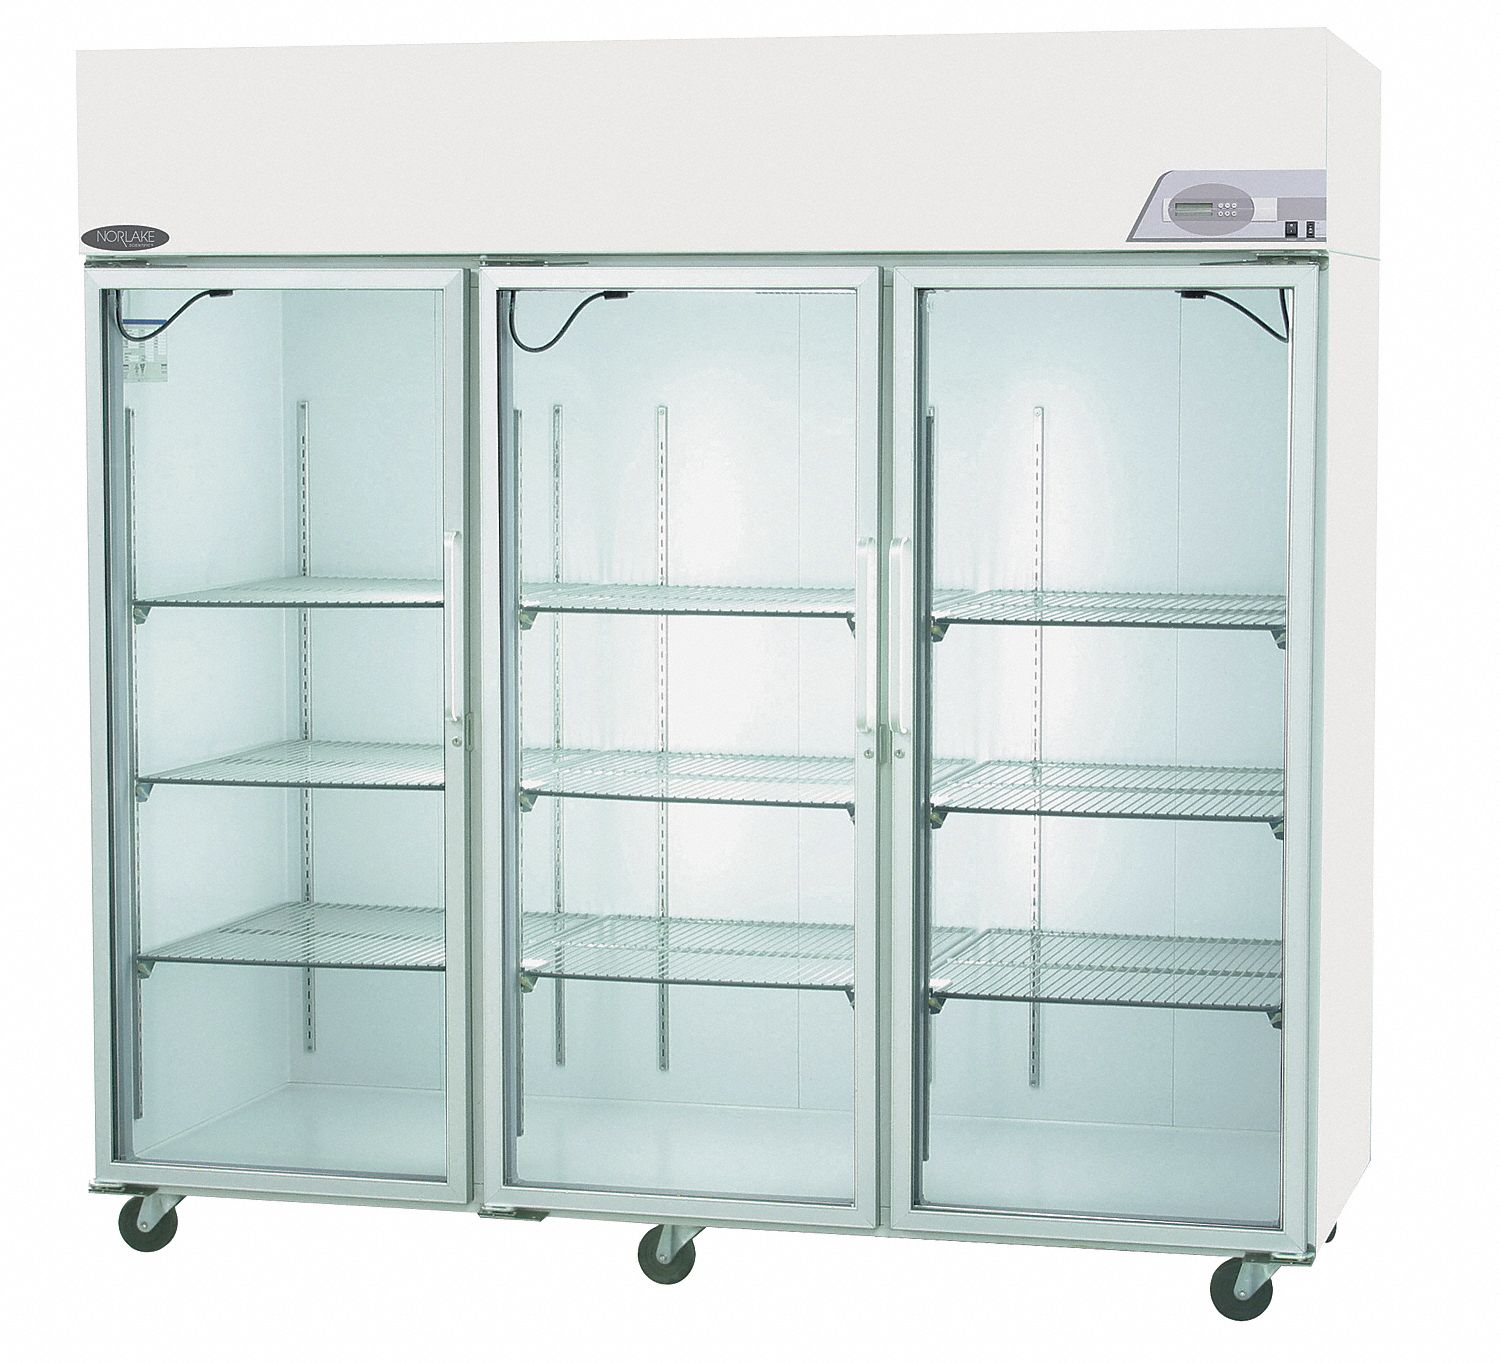 Nor Lake Scientific Refrigerator Upright 85 Cu Ft